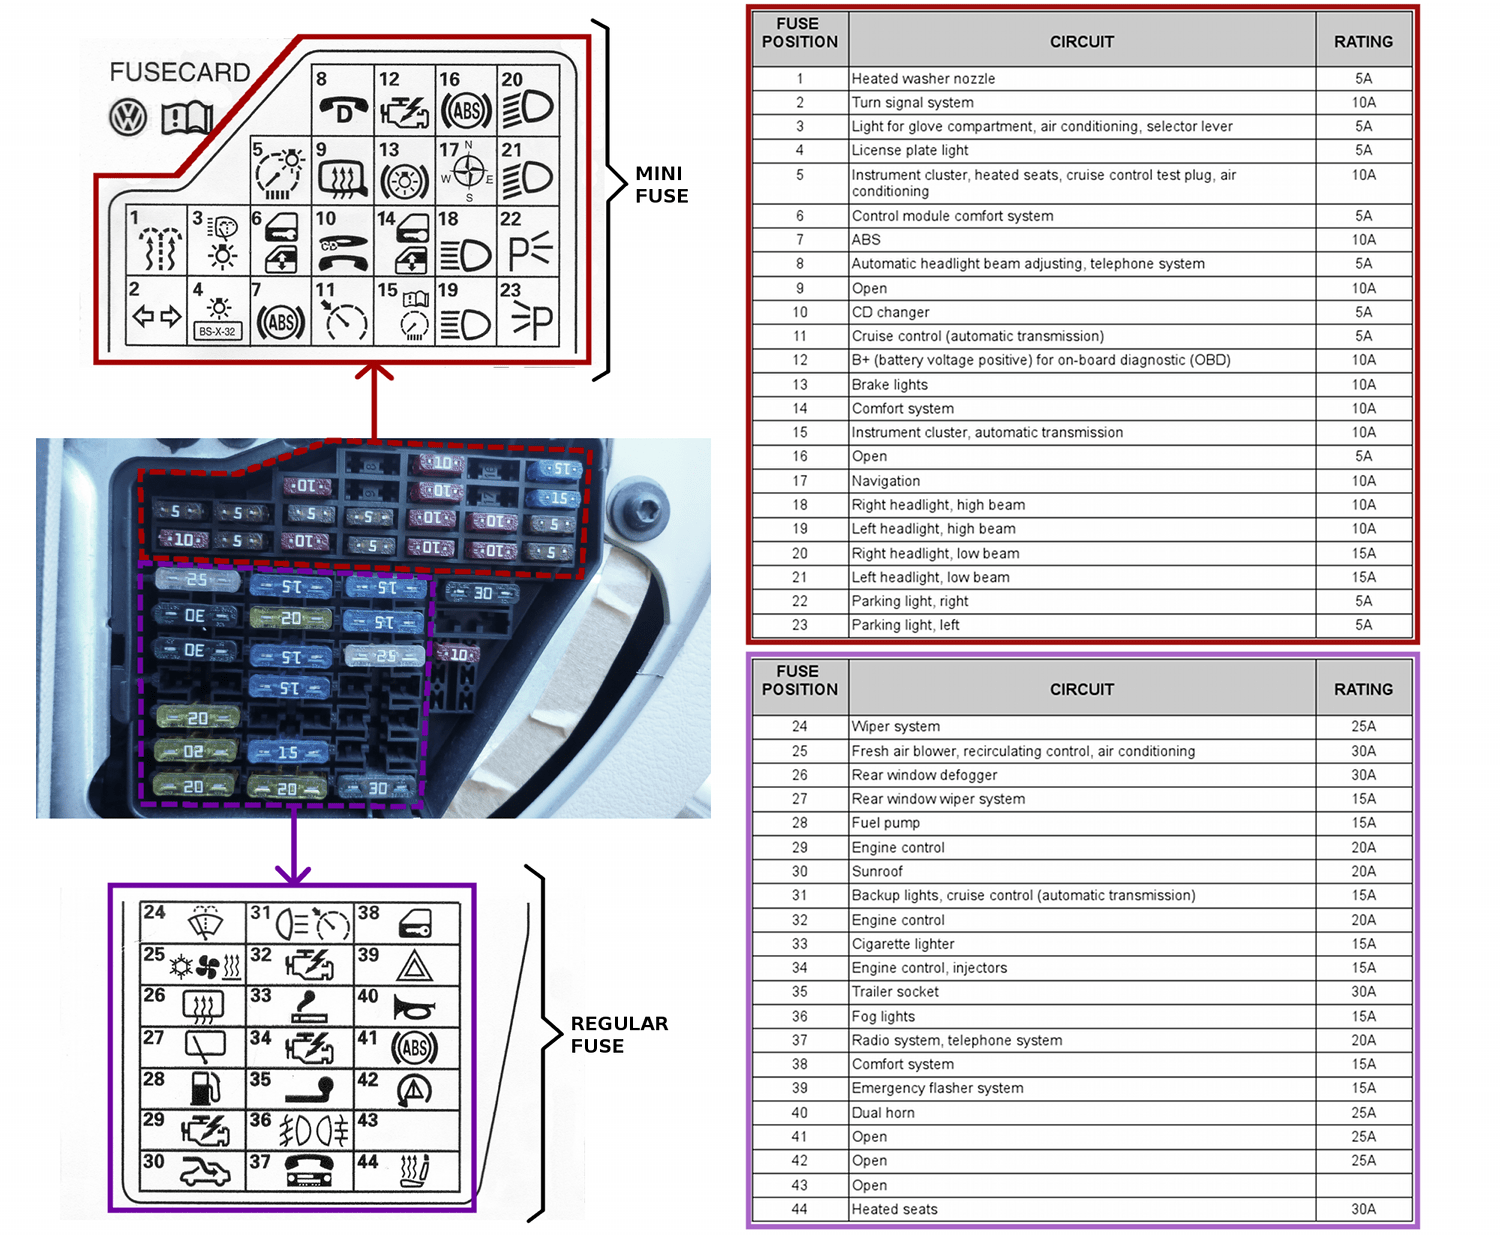 fuse box diagram for volkswagen tiguan fixya